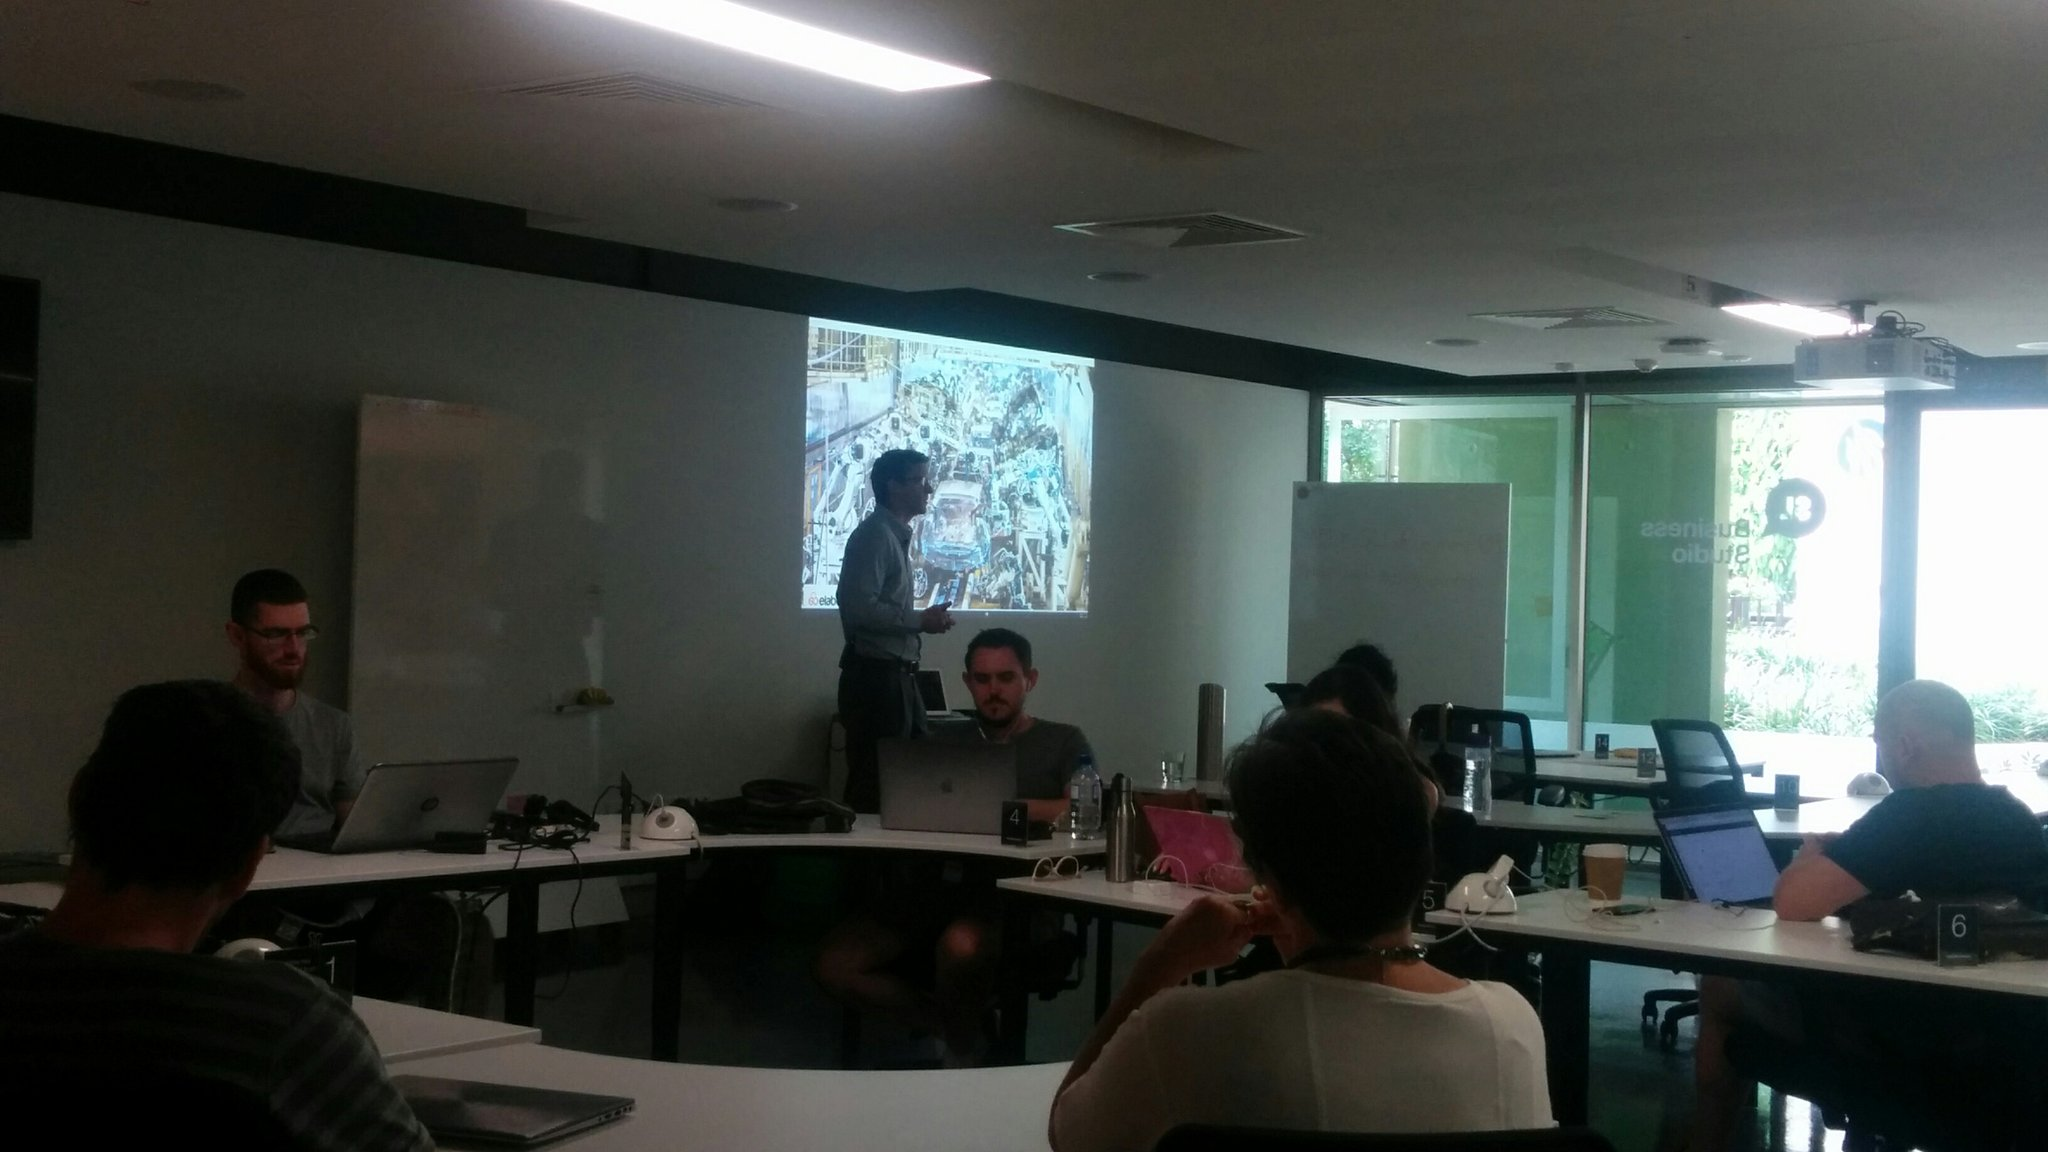 Learning about the #personalkanban model for time management at SLQ Business Studio lunch box forum  #slqbusiness https://t.co/5ecC4o6mks